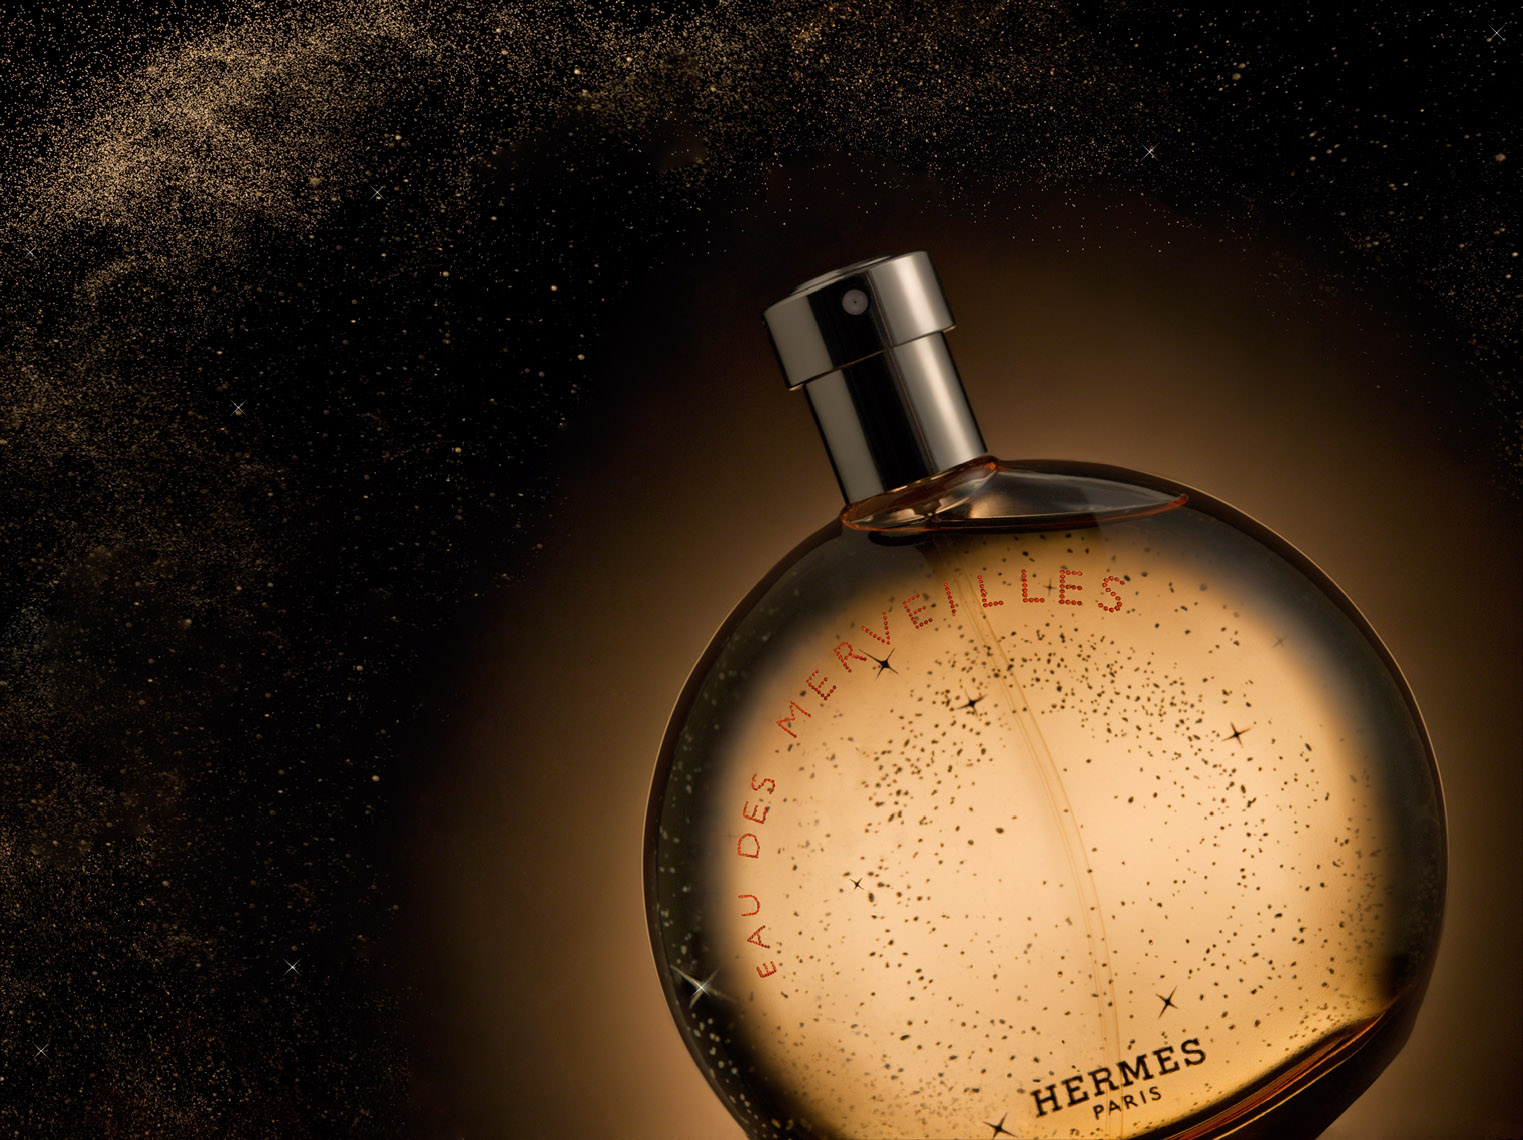 Hermes Bottle Stars